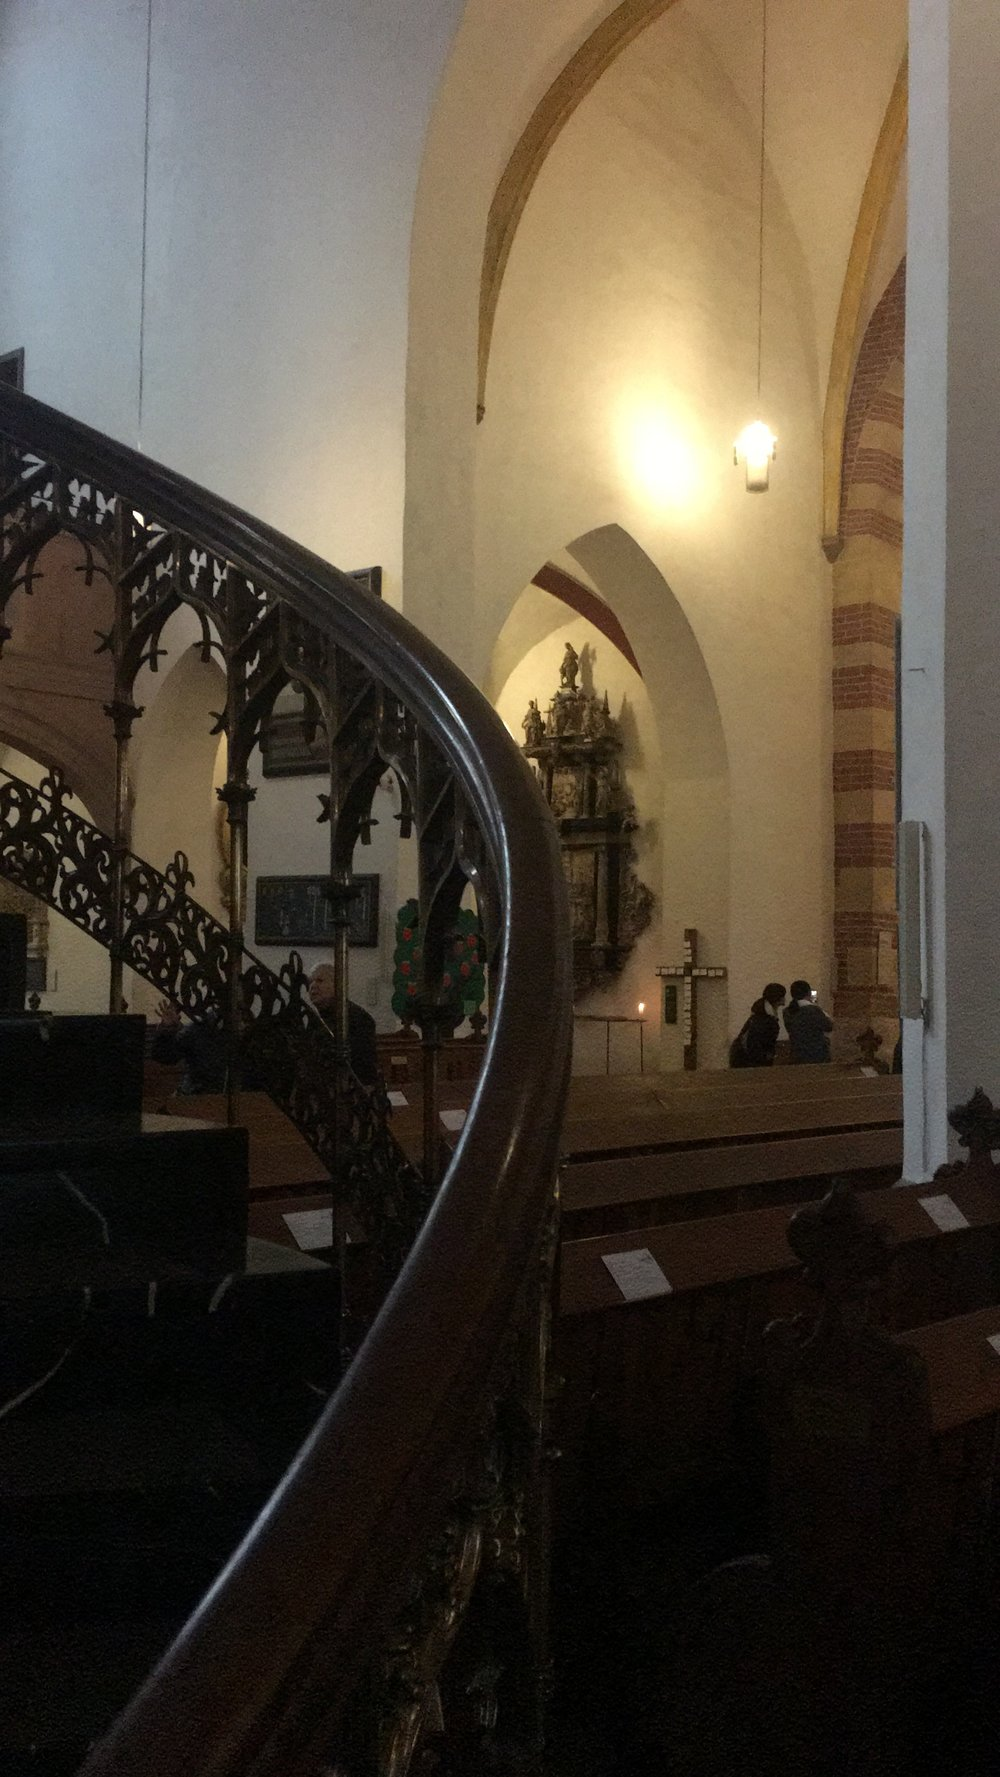 The beautiful wooden railing of the staircase that took you up to the pulpit!